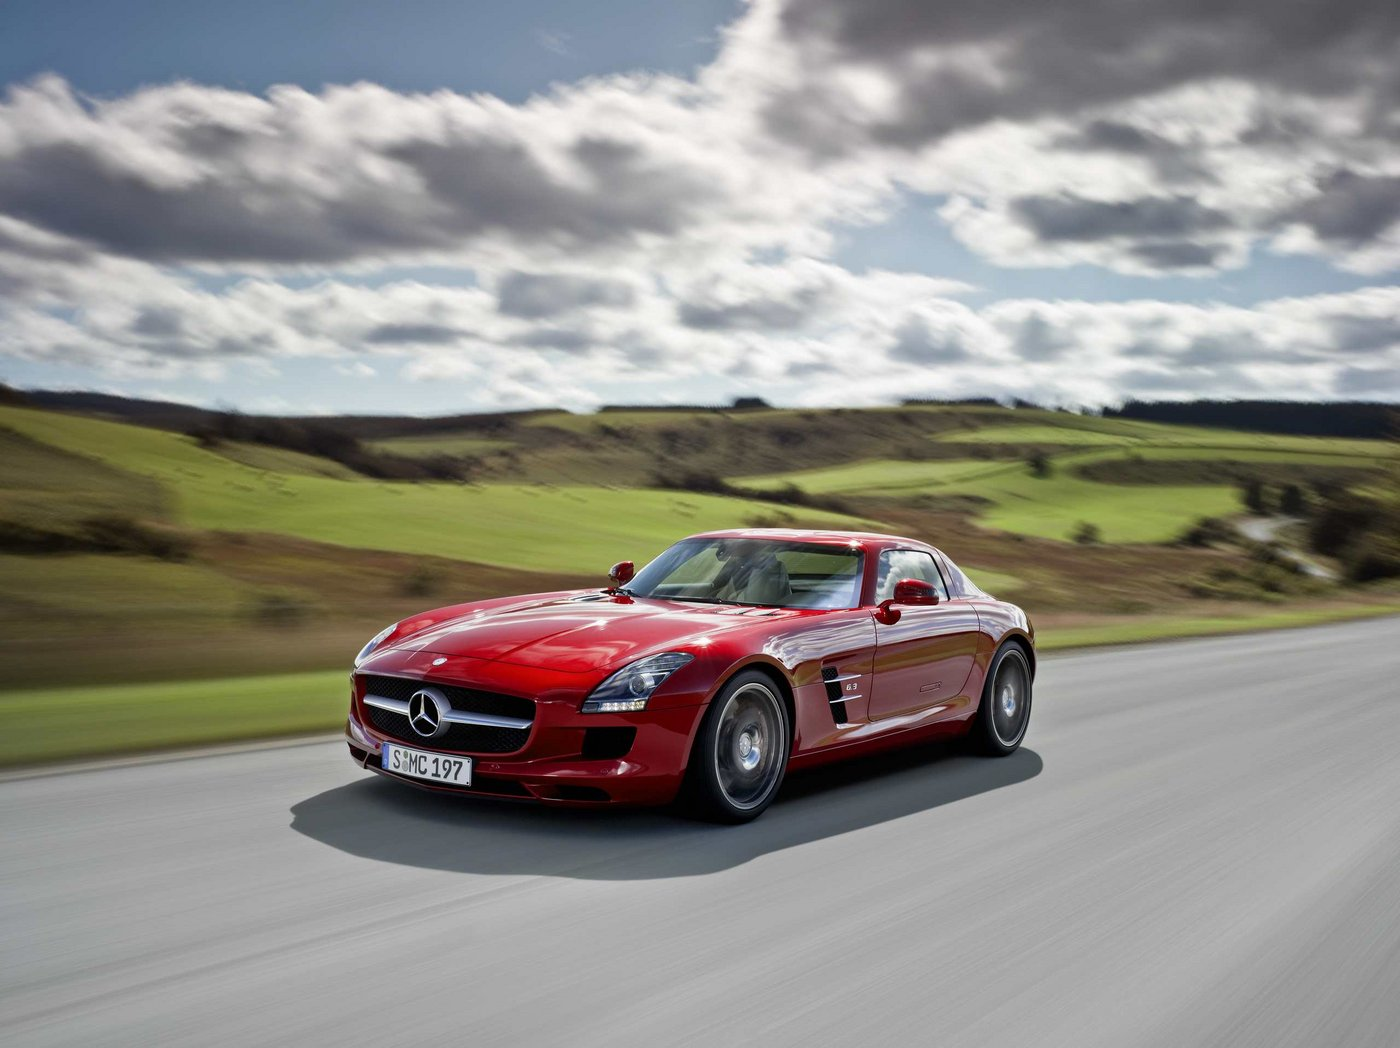 2010 mercedes benz sls amg photo gallery autoblog. Black Bedroom Furniture Sets. Home Design Ideas